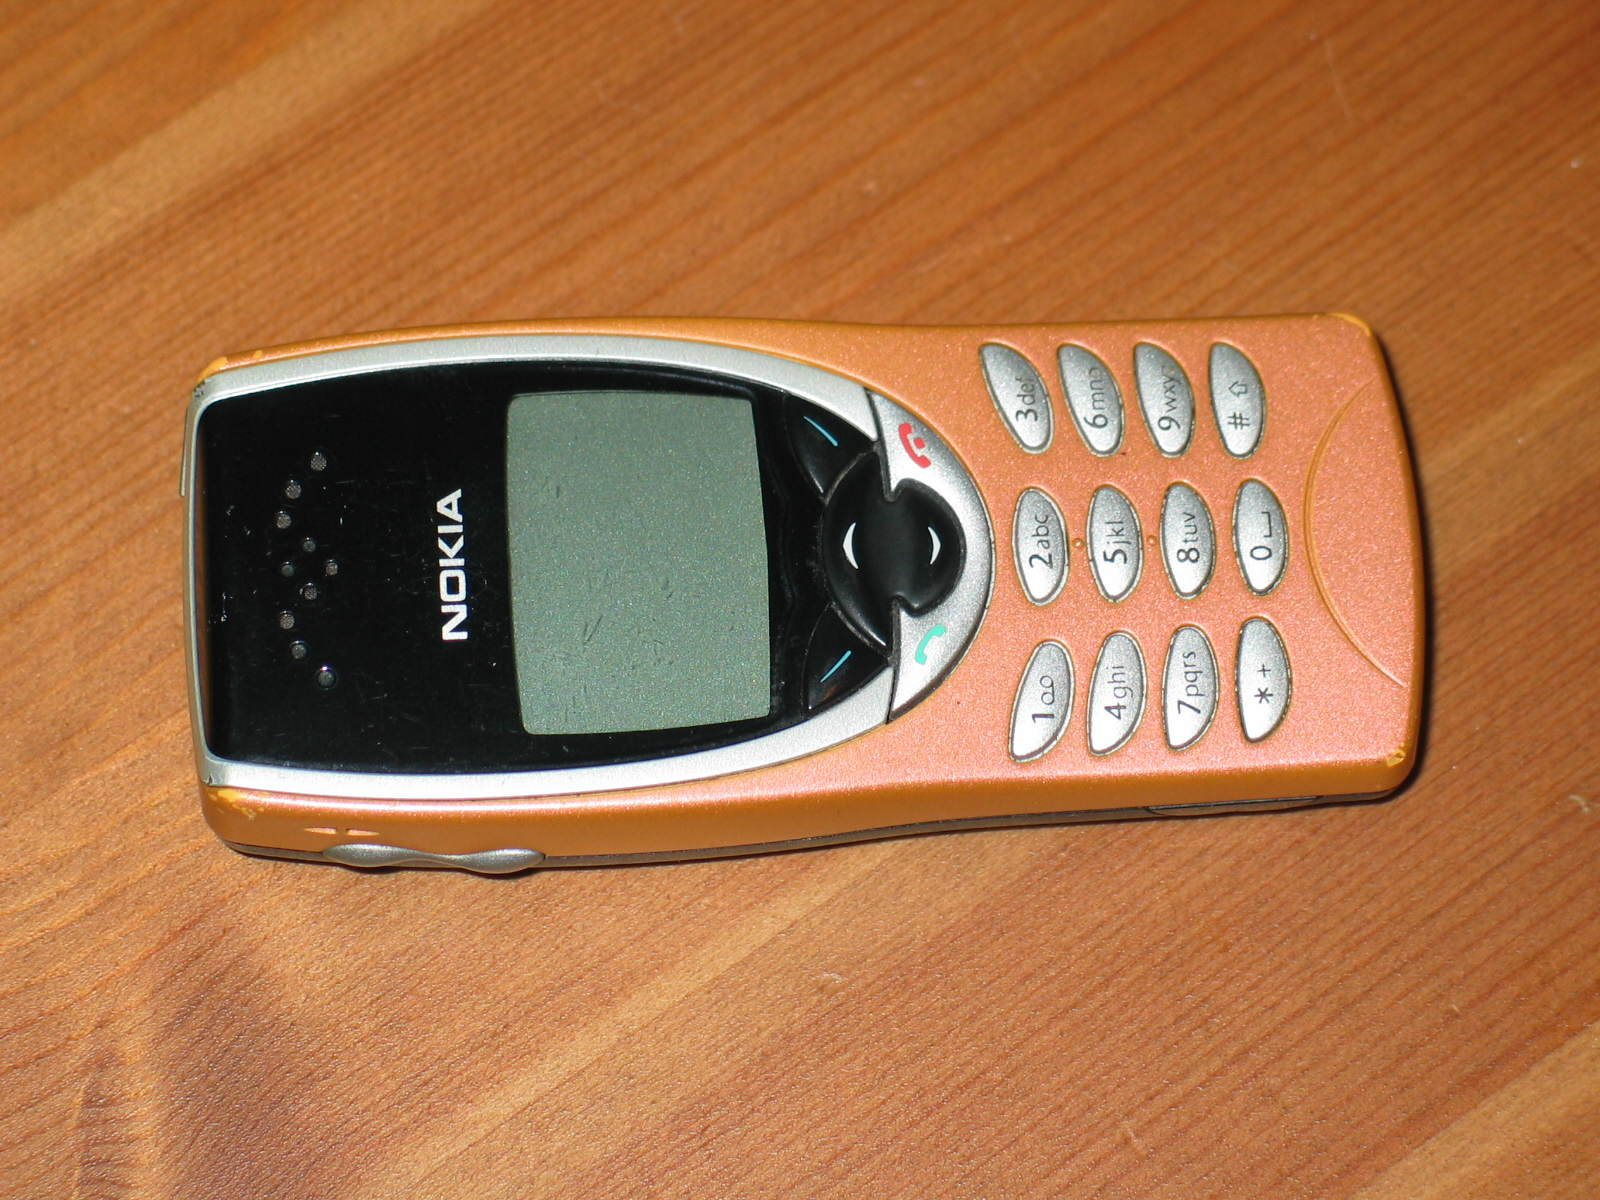 nokia 8210 orange The Nokia 8210 Is Making A Comeback With Drug Dealers